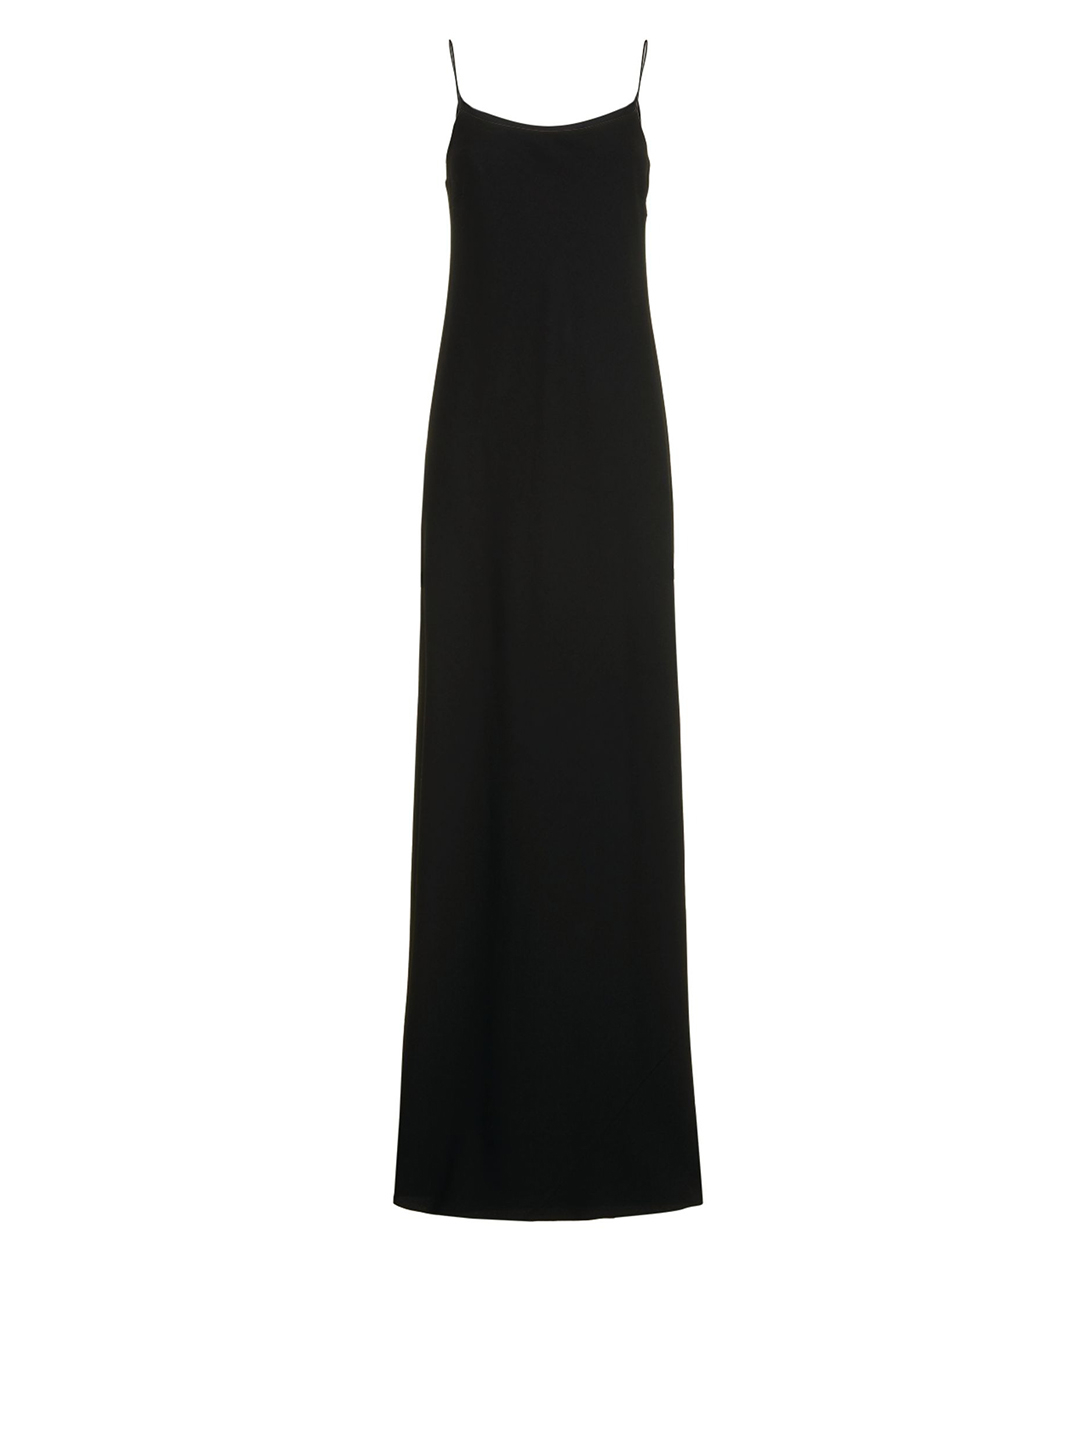 THE ROW Ebbins Matte Crepe Maxi Dress Women's Black